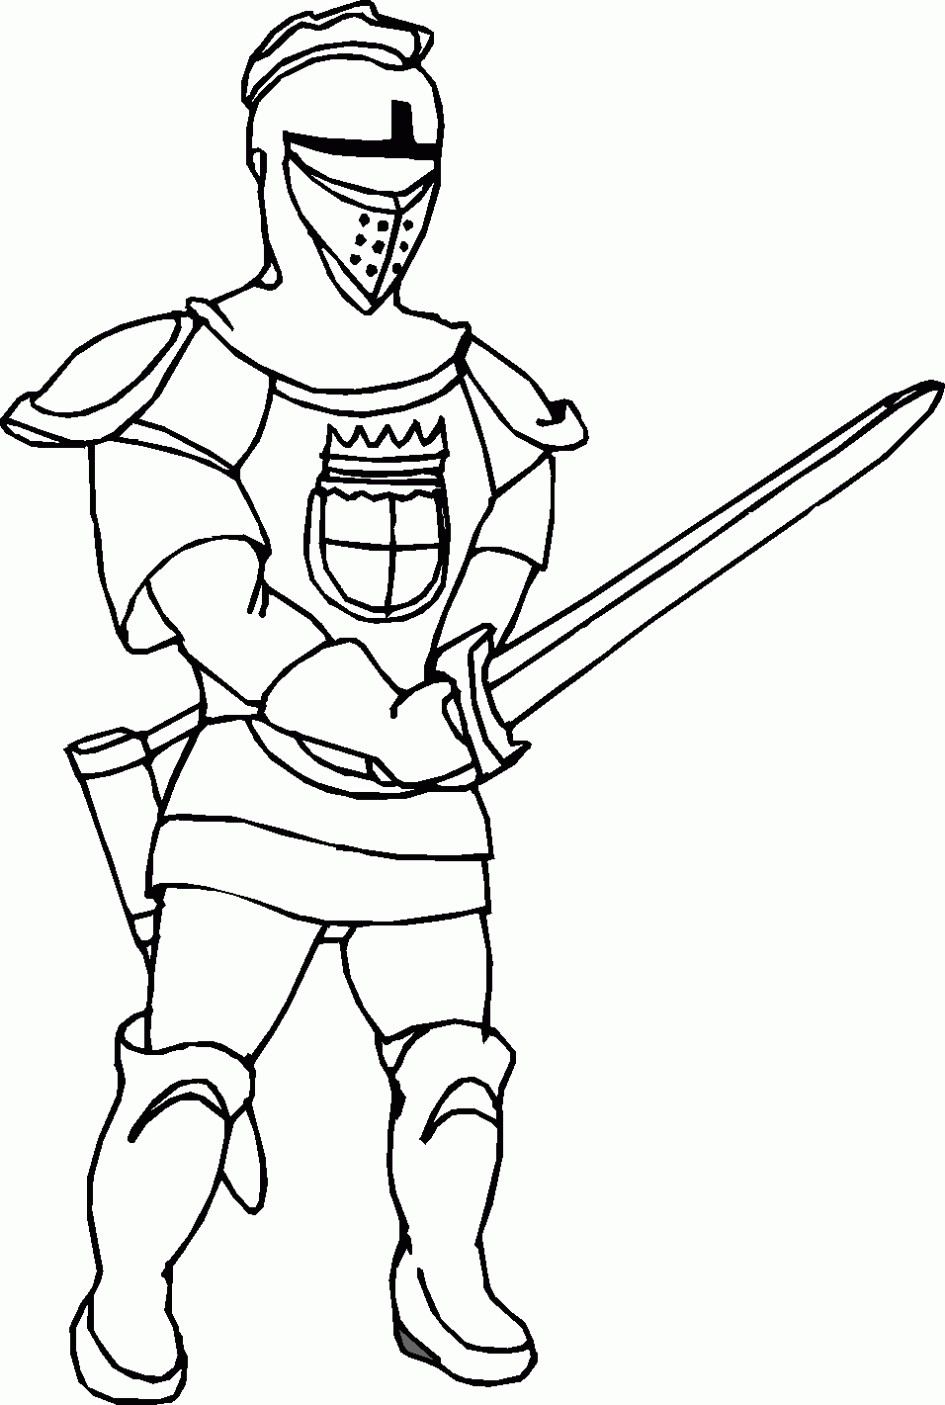 945x1405 Coloring Pages Medieval Knights Best Of Me Val Knight Coloring